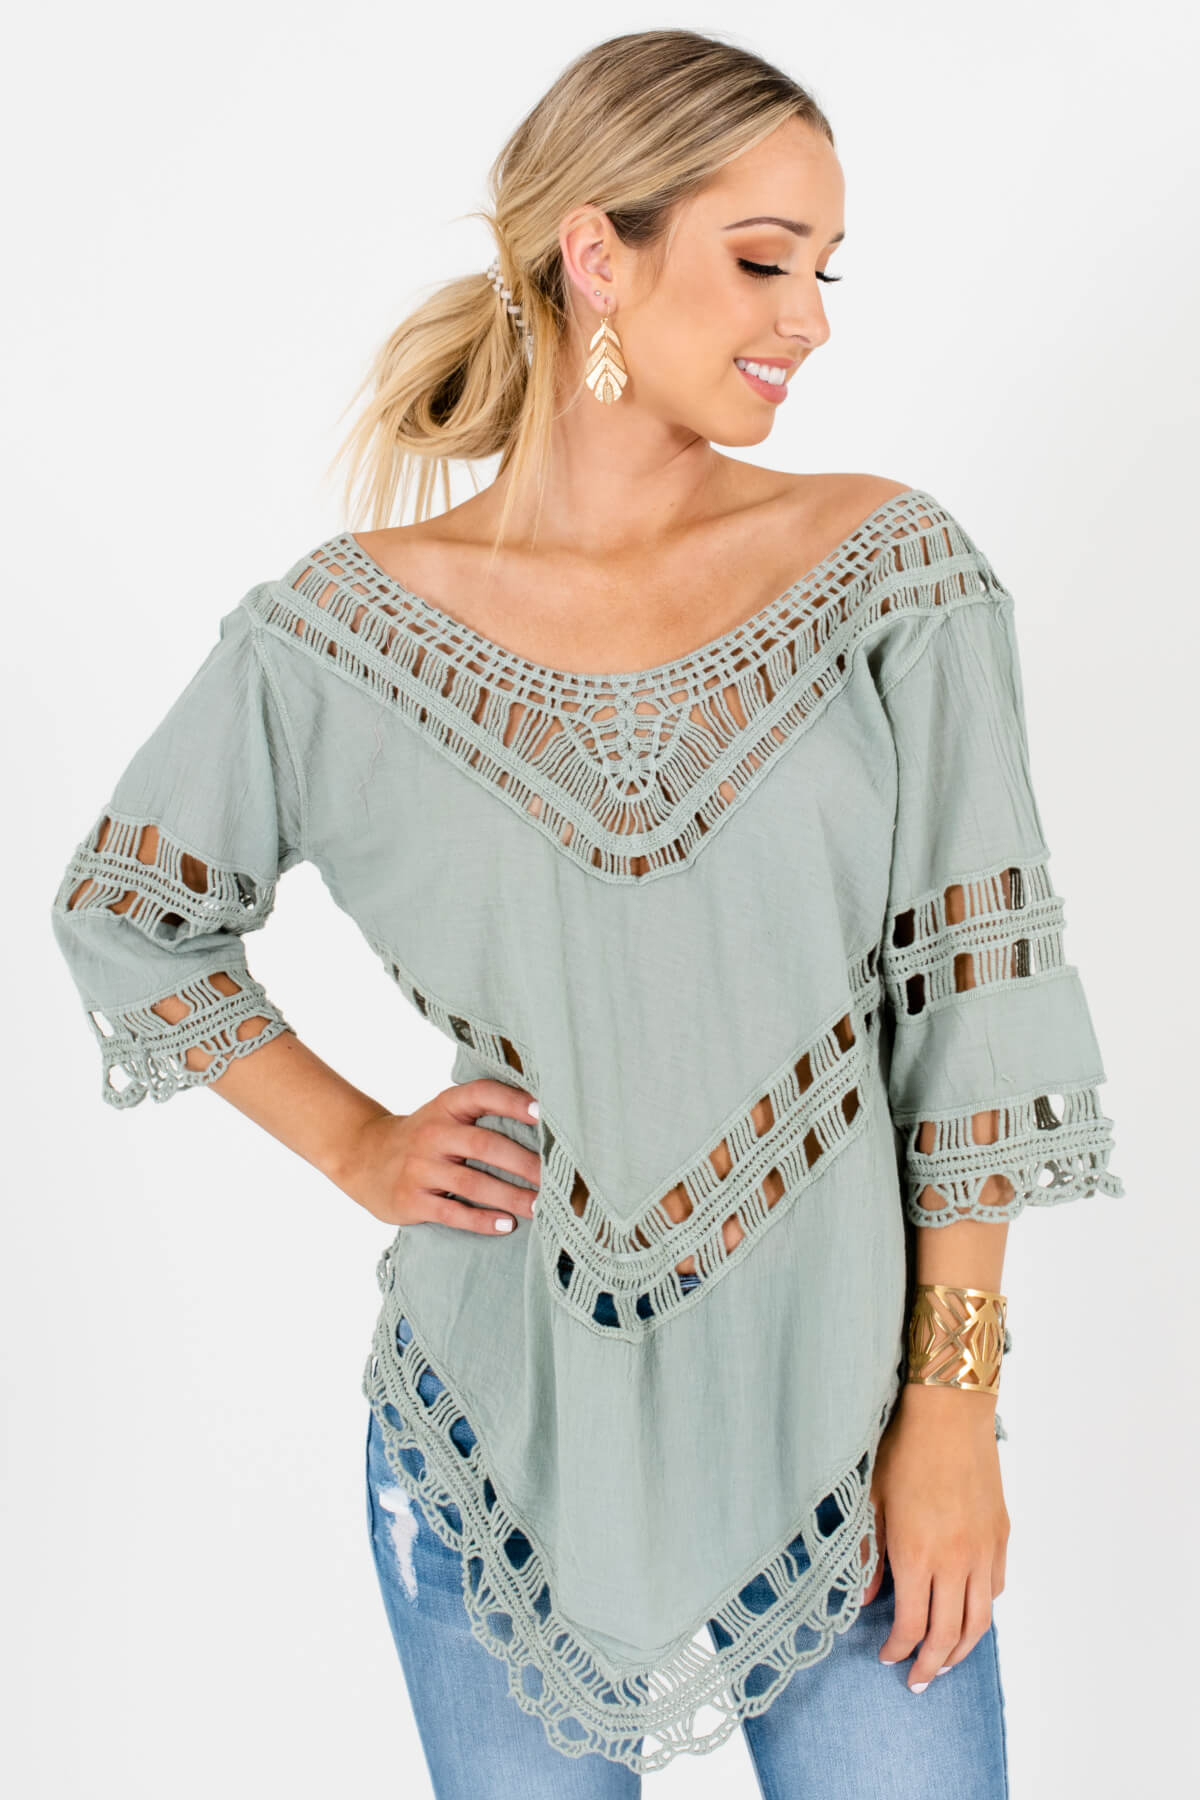 Green Semi-Sheer Material Boutique Tops for Women